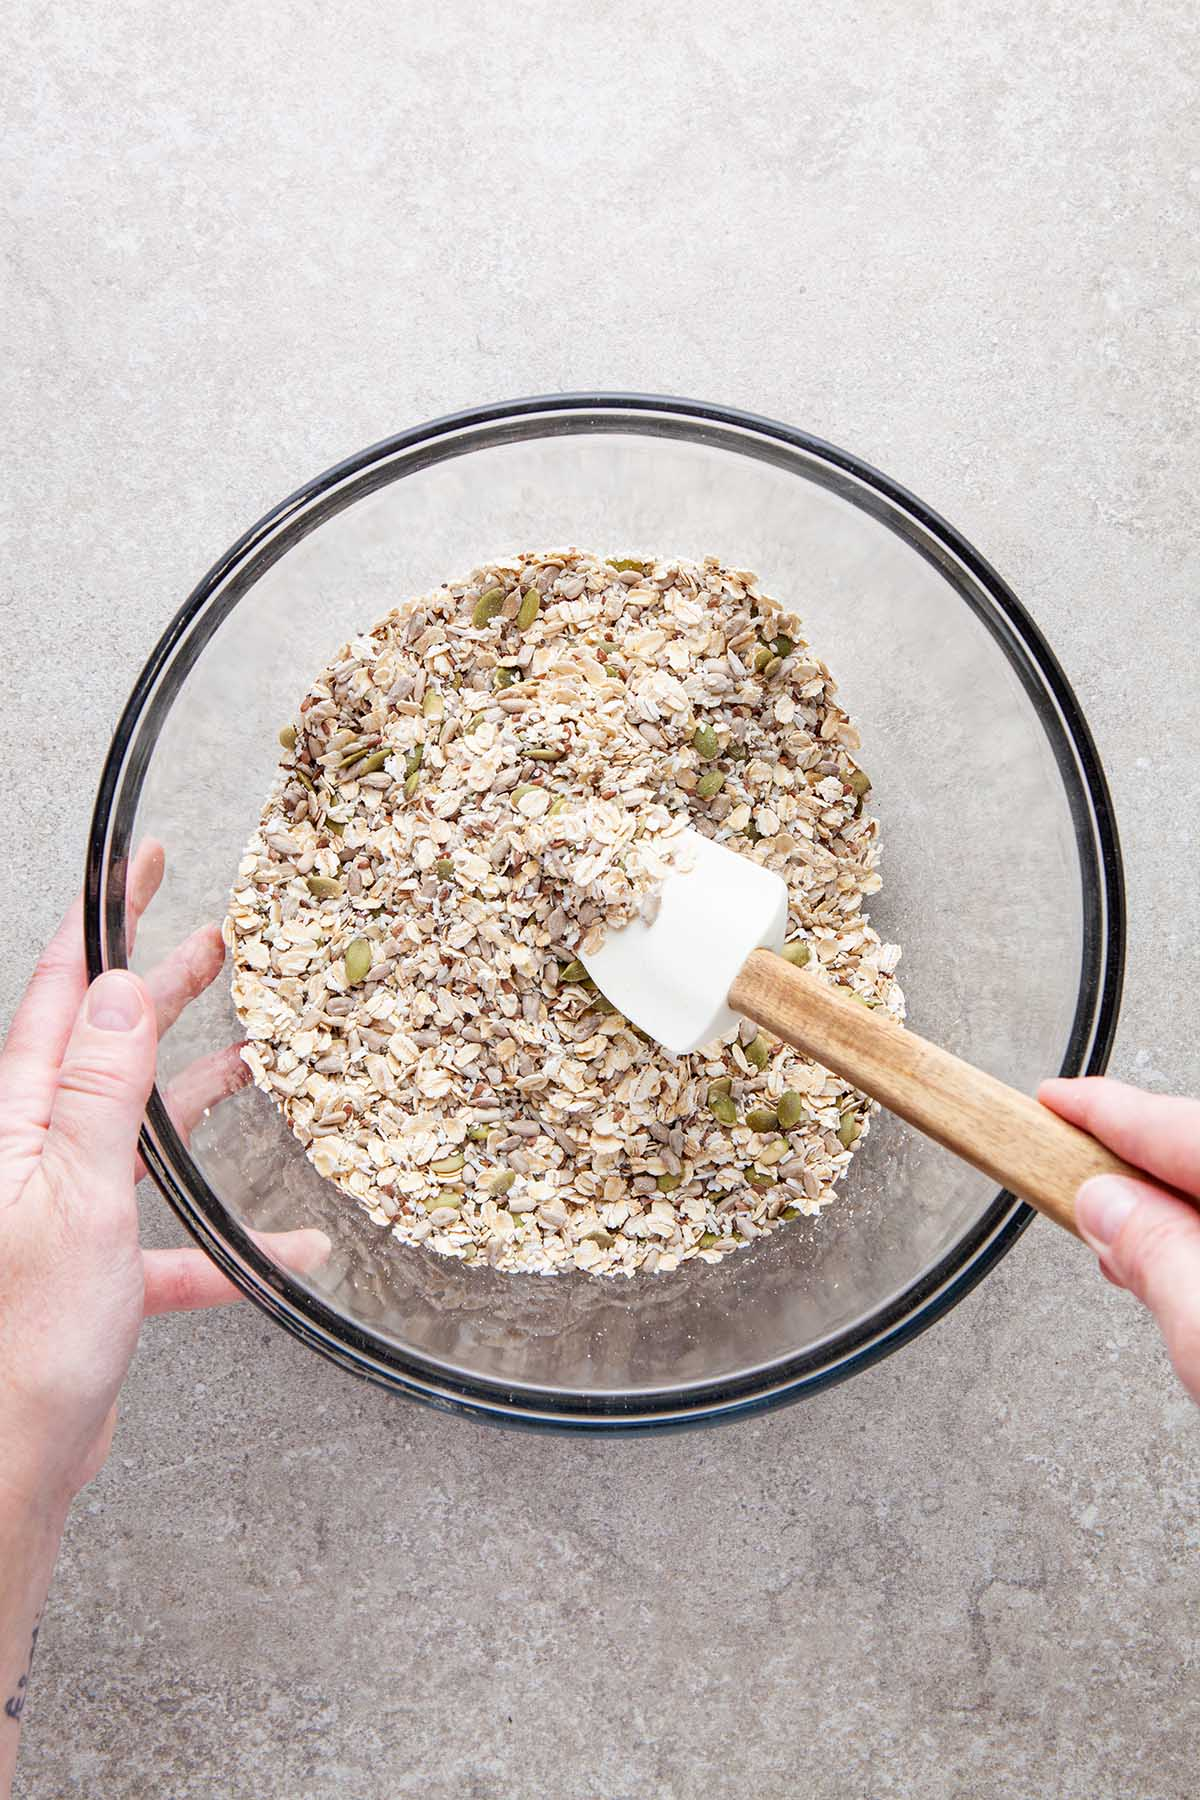 A hand mixing oats, seeds, and shredded coconut together.